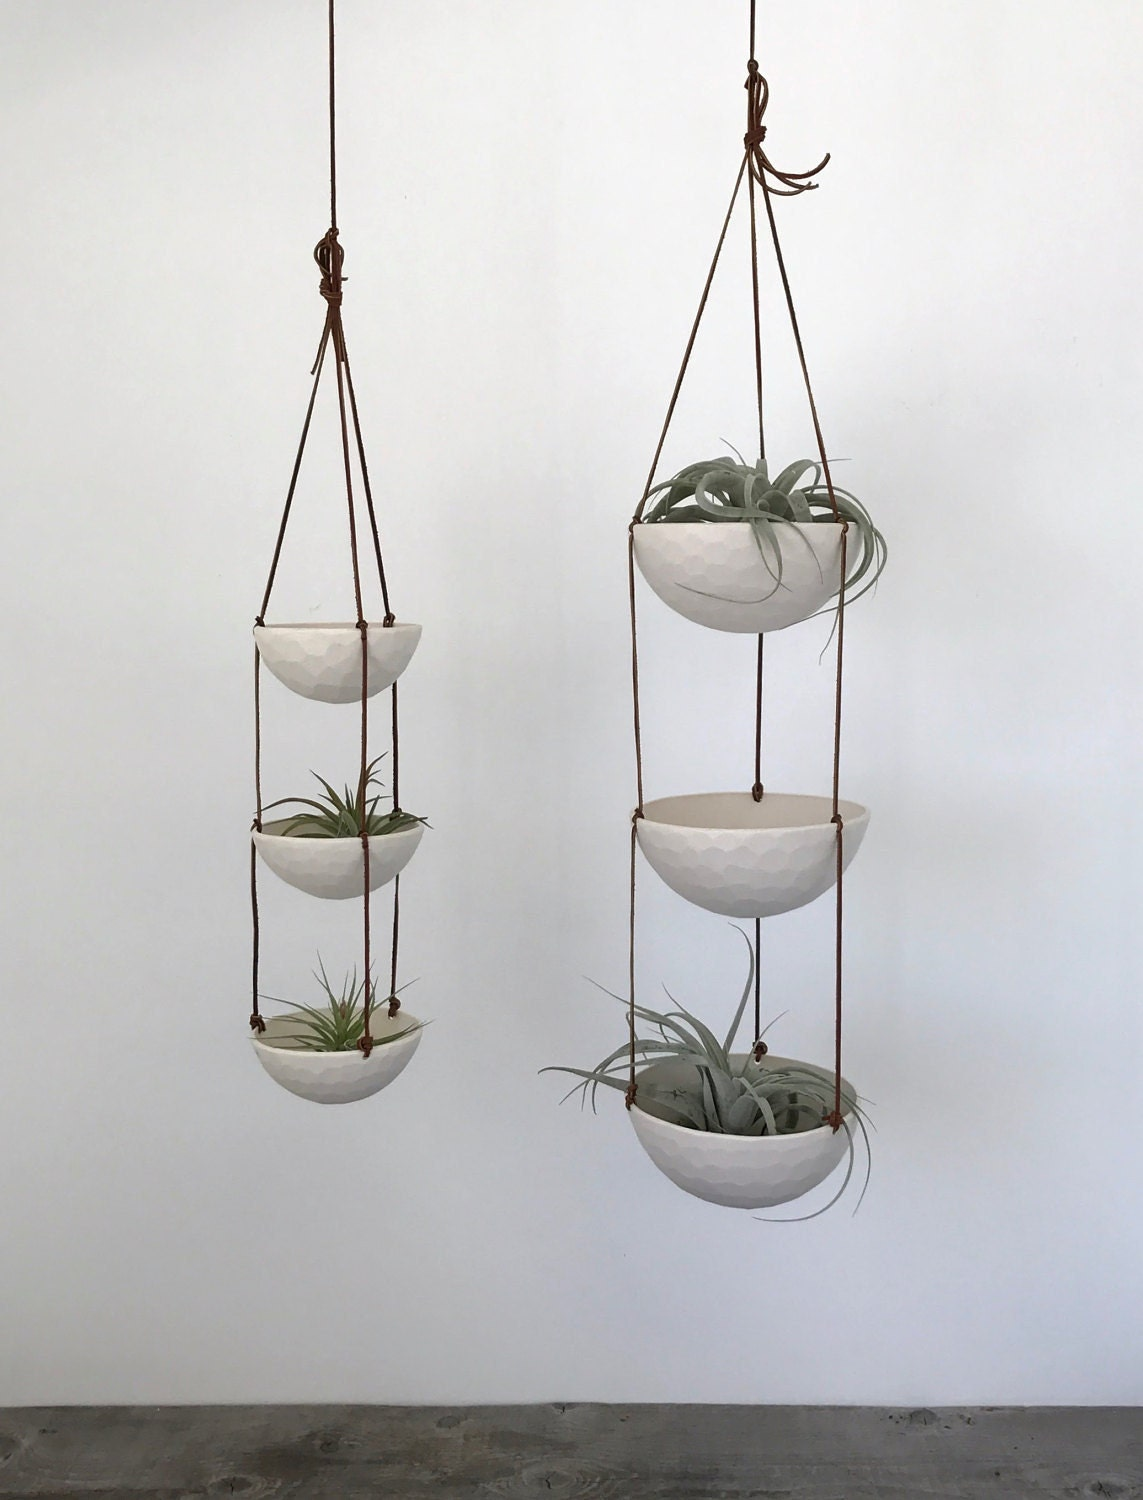 3 Tier Medium Bowl Hanging Succulent Planter, Geometric Faceted or Smooth finish, with Leather Cording